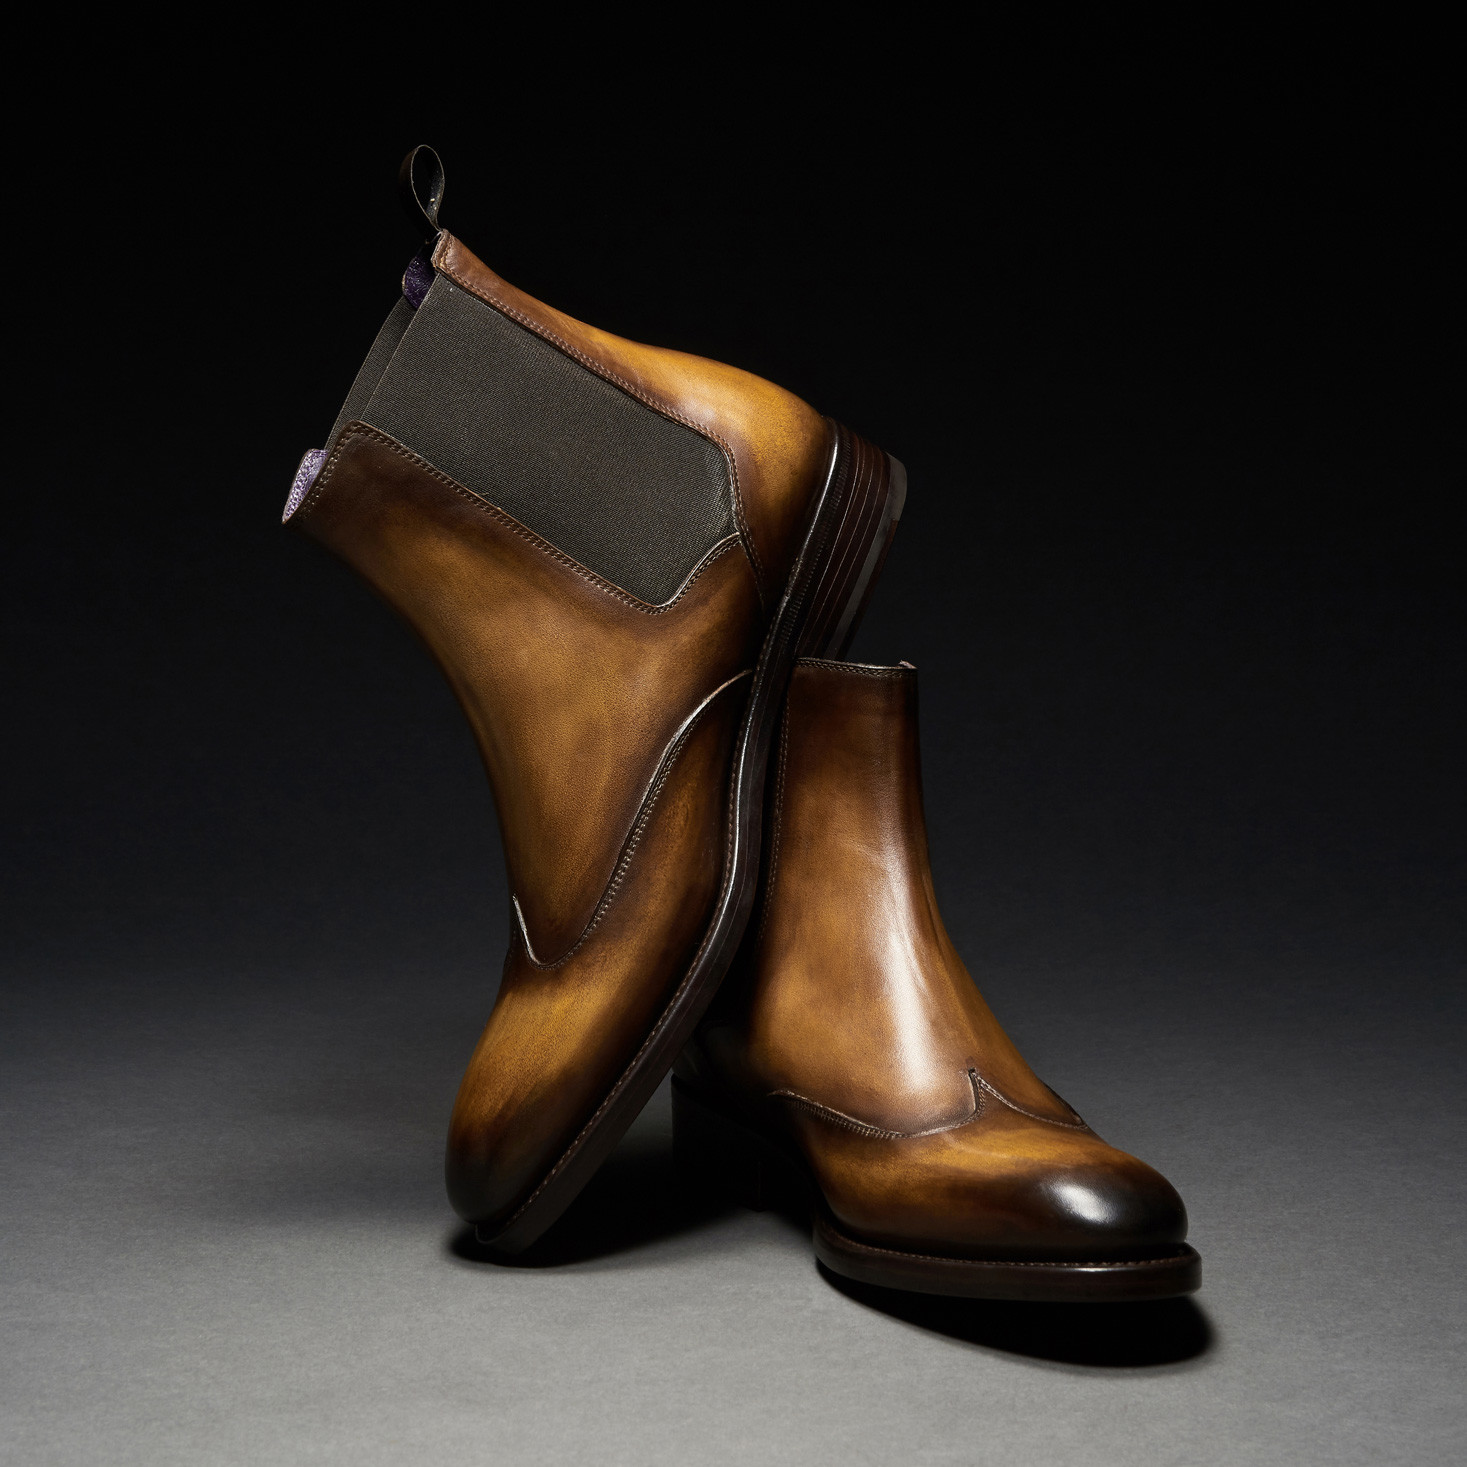 [Custommania X The shuri] PATINA CHELSEA BOOT BOT No.391